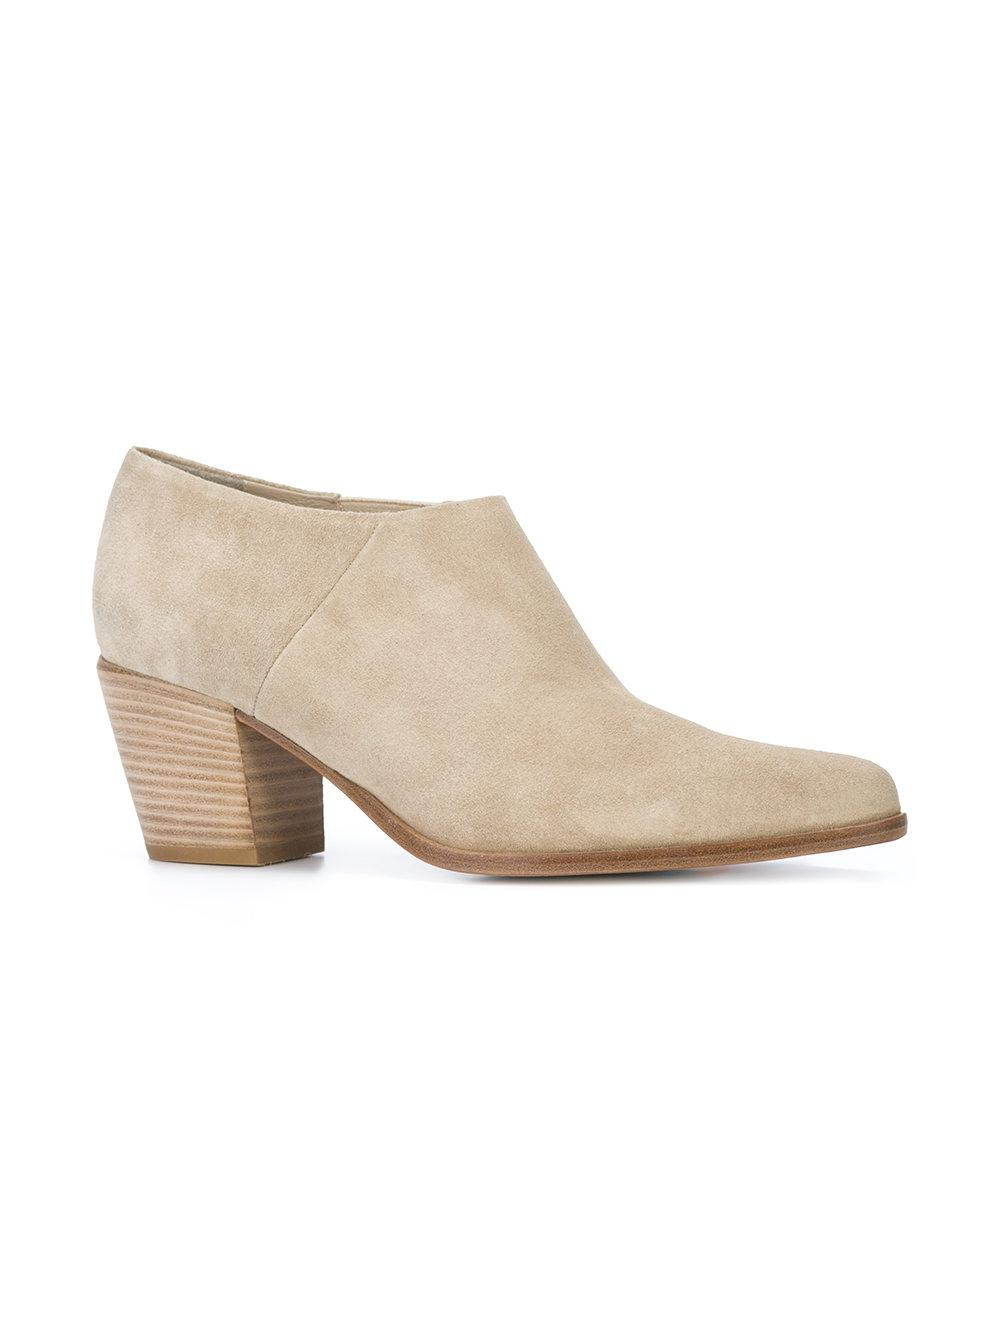 Vince Leather Ankle Boots in Brown